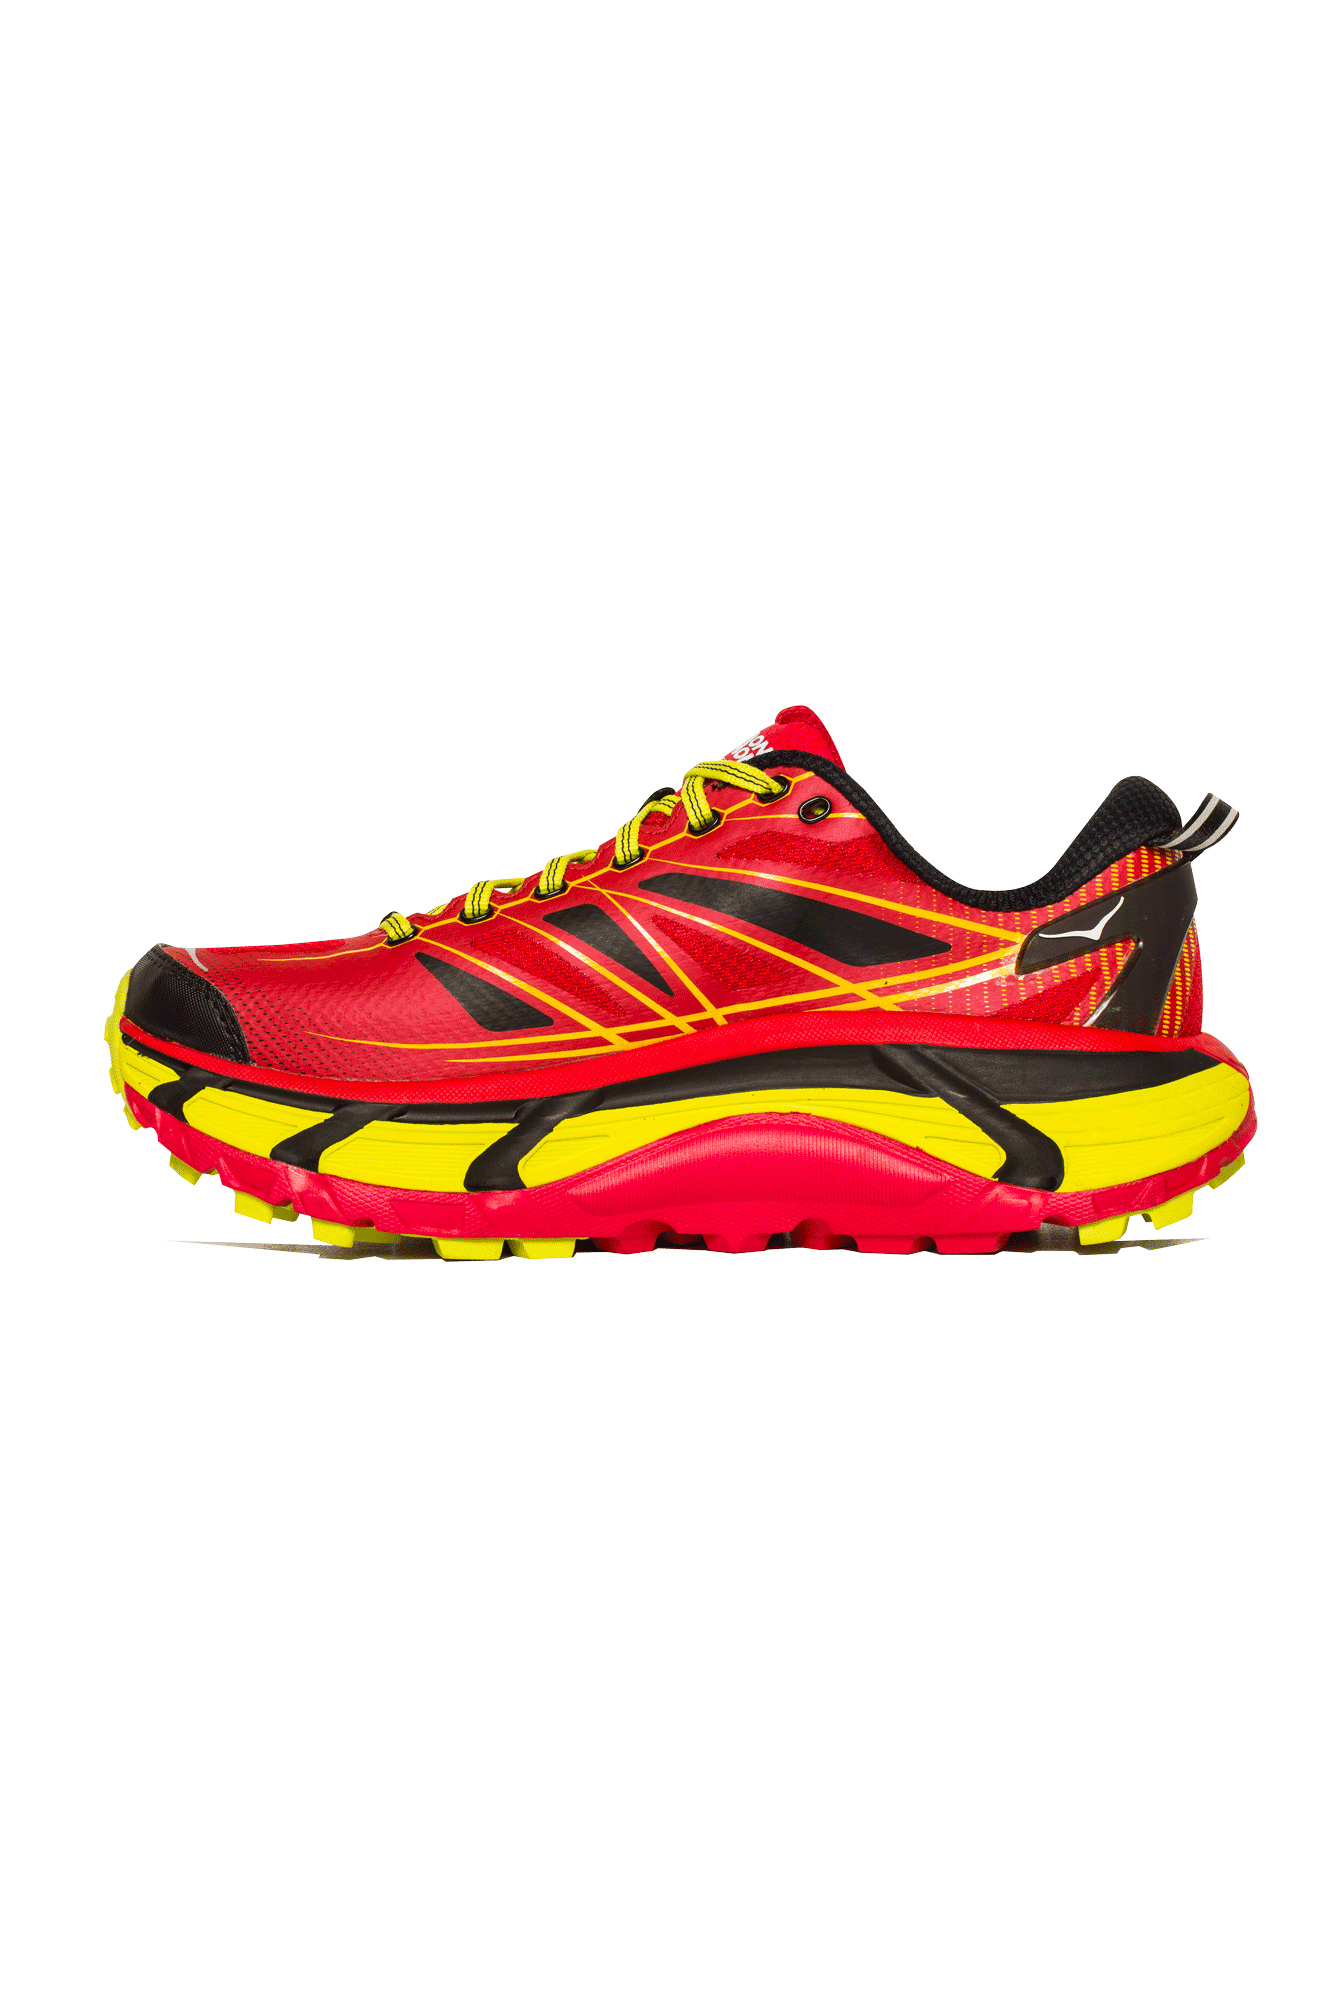 Hoka One One Trainers Mafate Speed 2 Men's Red 1012343T#000#RCT#8 - One Block Down